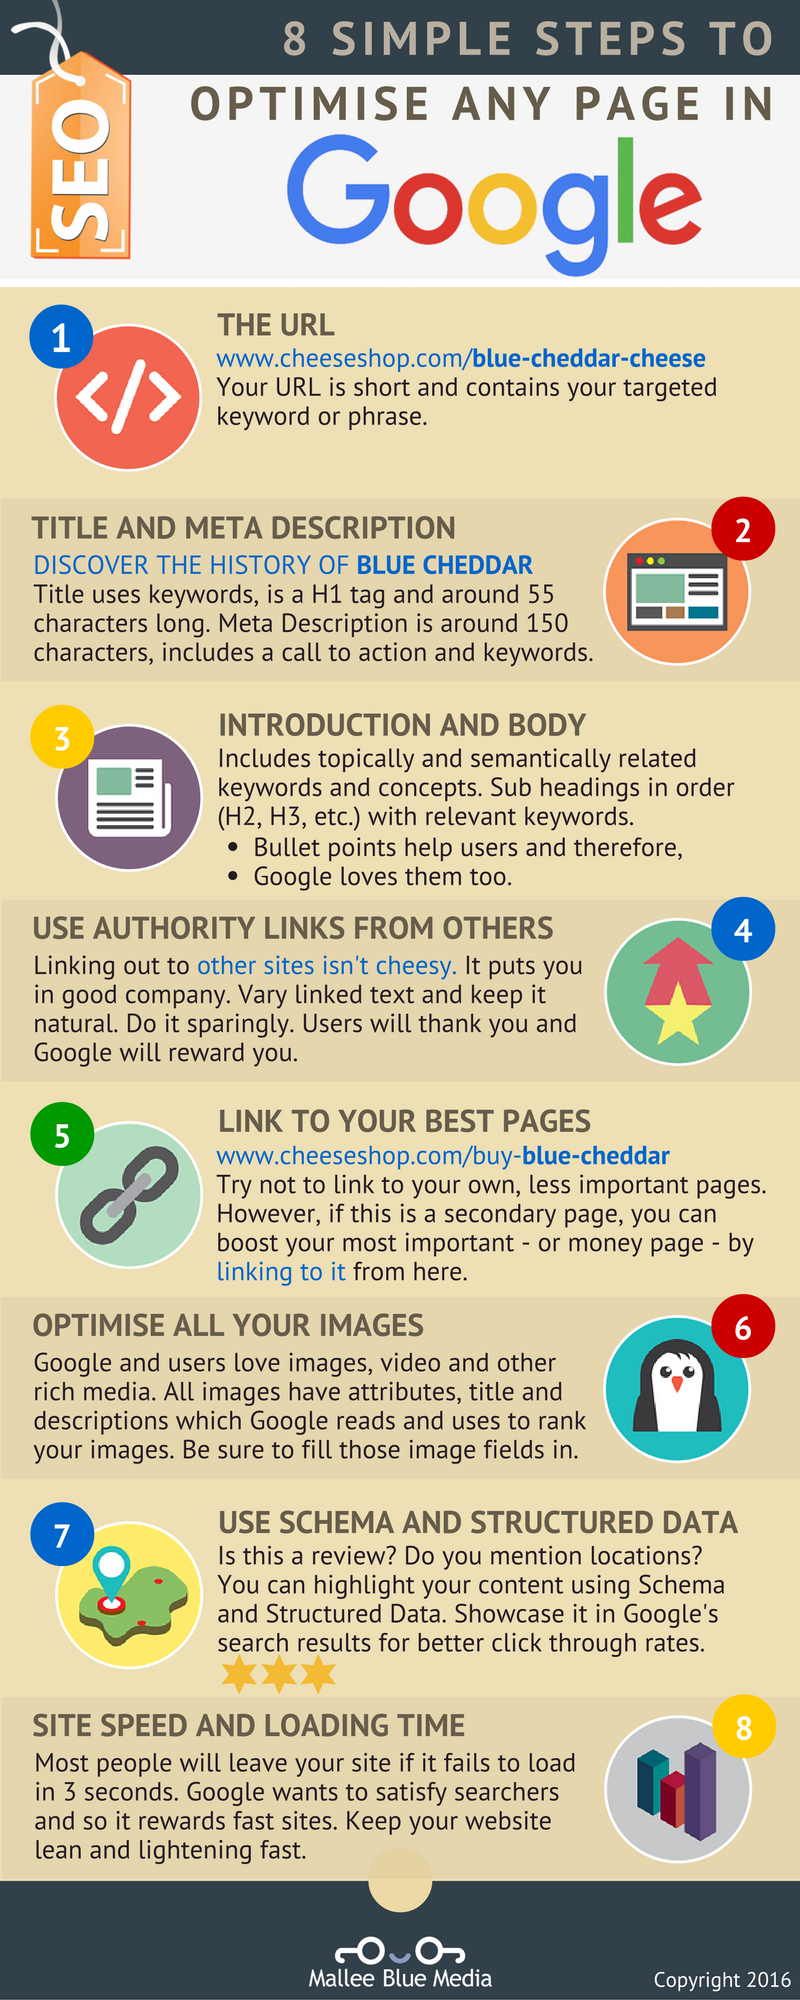 The First Page of Google in 8 Simple Steps Infographic